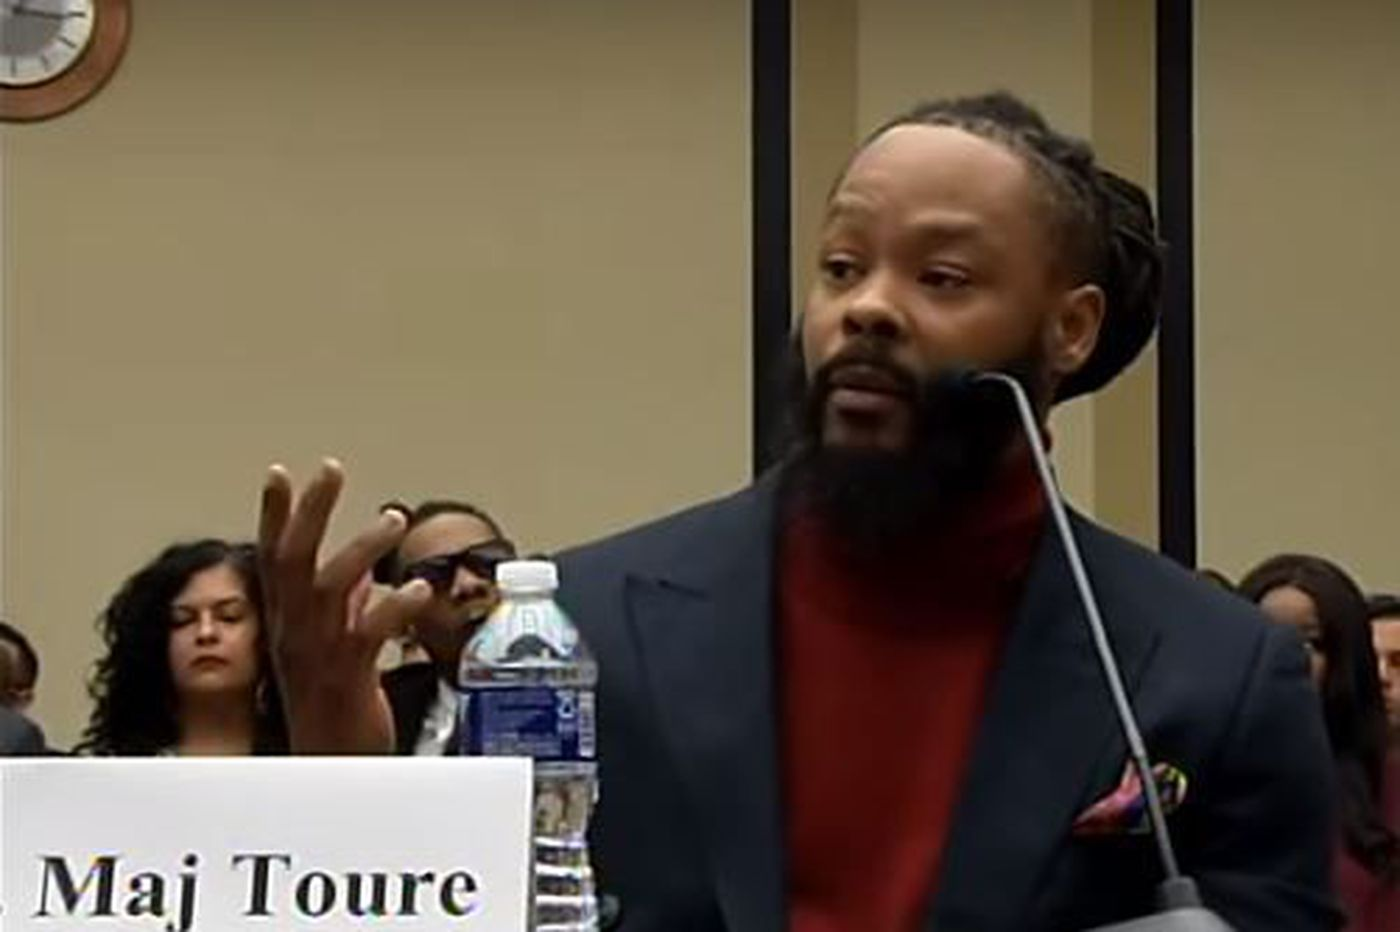 Maj Toure exits the Libertarian Party in controversy after a failed bid for City Council | Clout